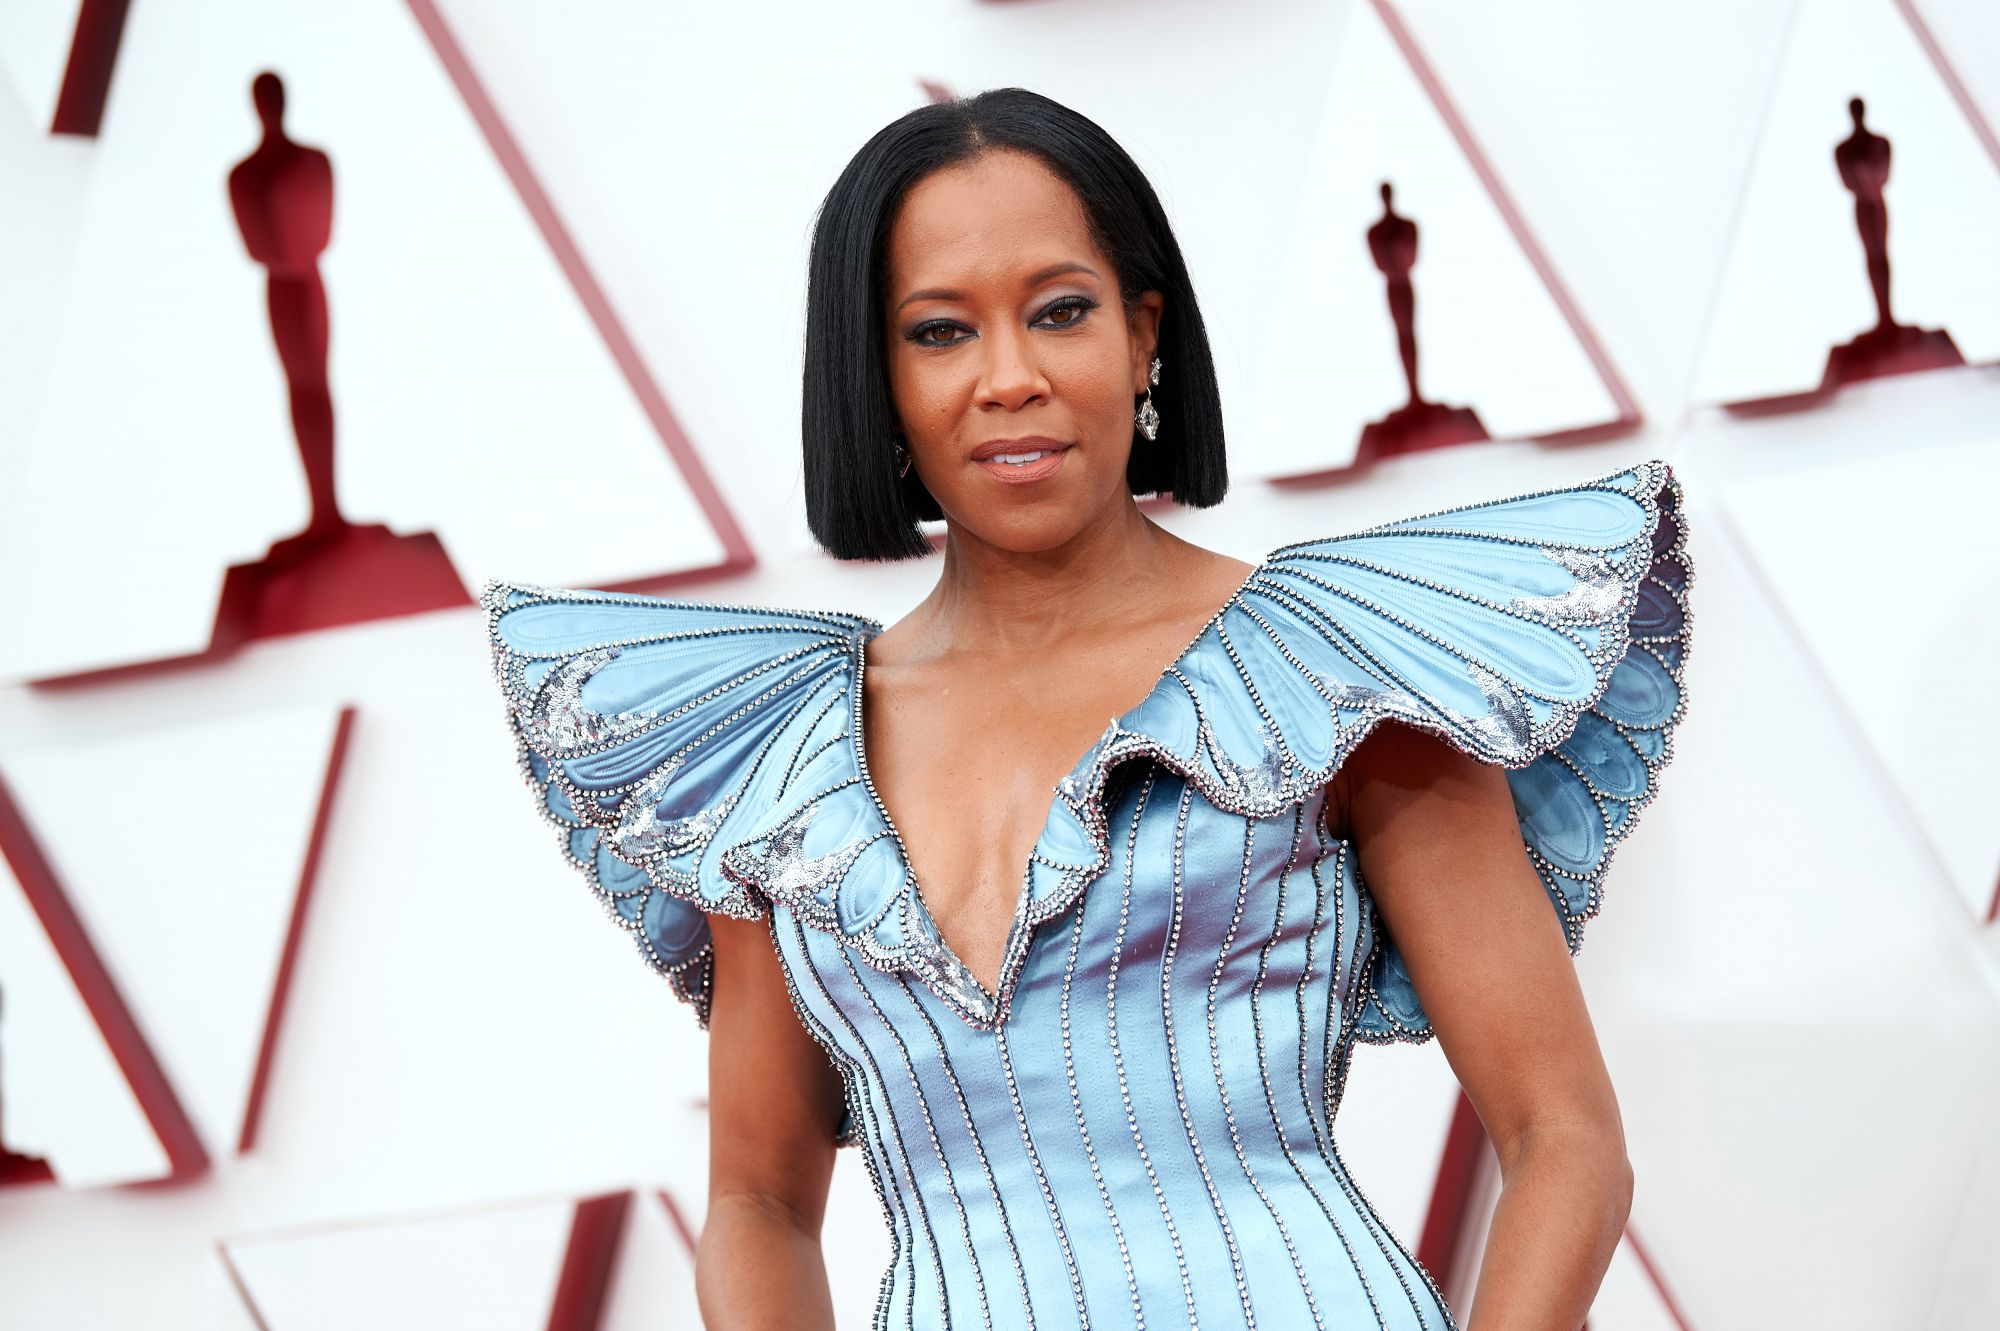 Regina King's heavily lined eyes added a dramatic effect to her look, matching well with her Louis Vuitton dress. (Image: Matt Petit/A.M.P.A.S. via Getty Images)